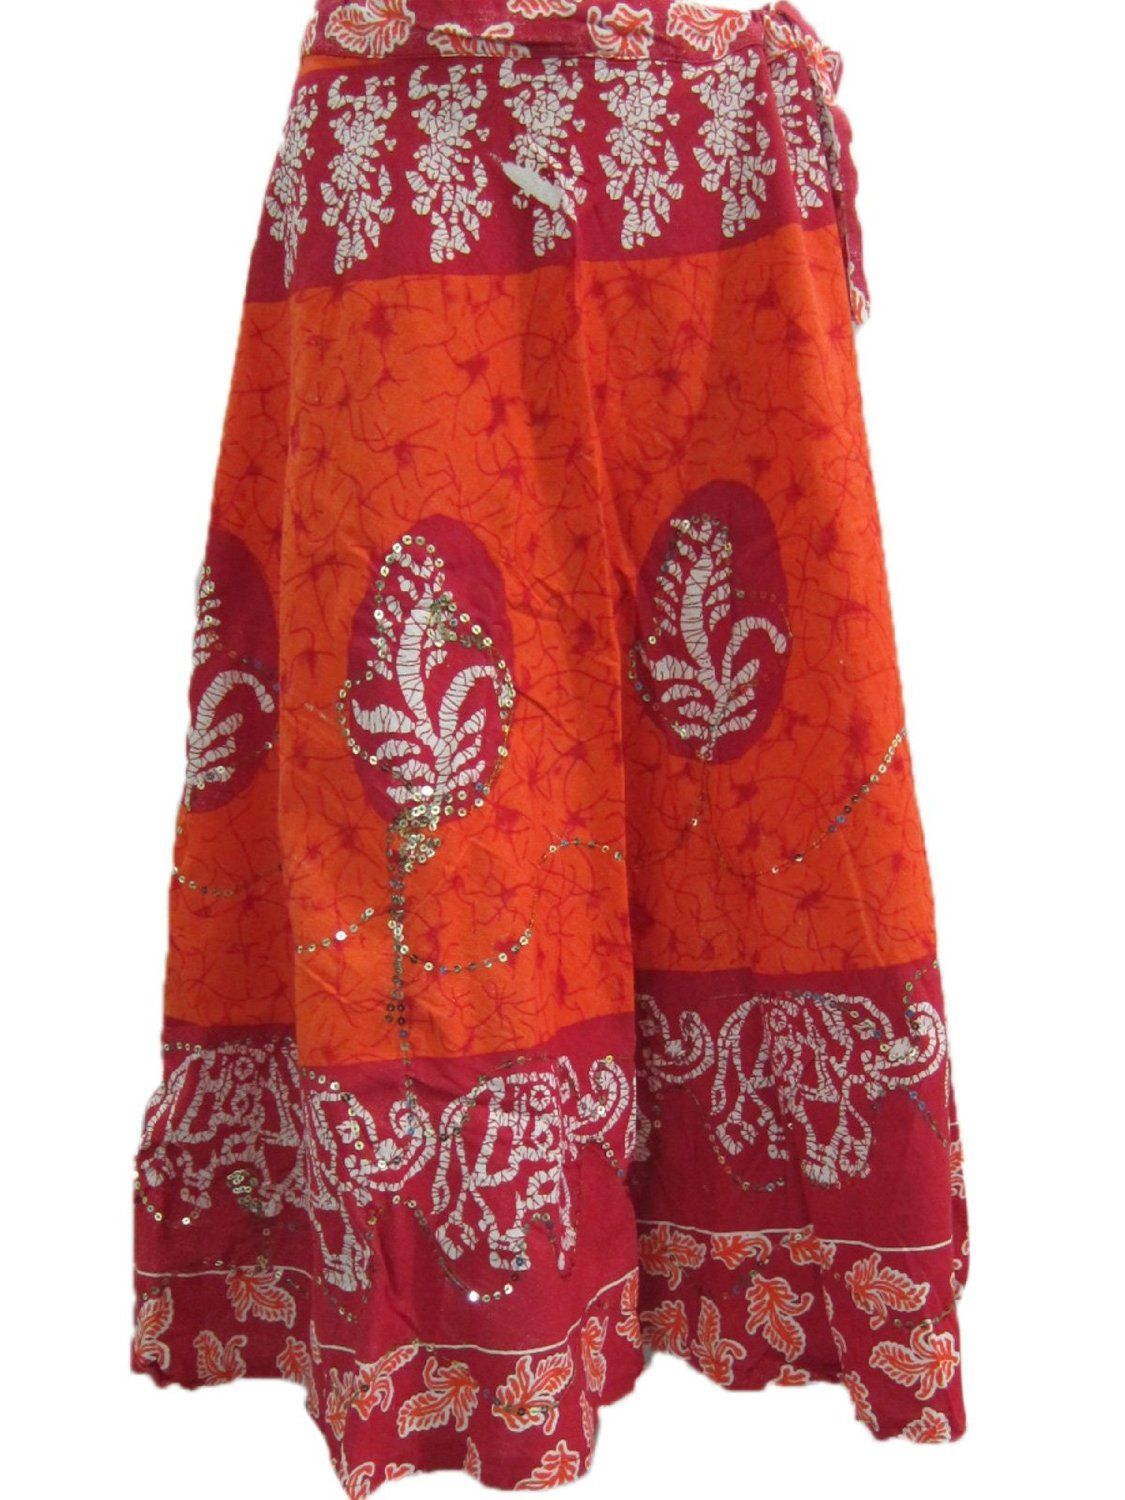 029c965f1c Amazon.com: Boho Gypsy Skirt for Her- Orange Peasant Skirt Womens Batik Cotton  Skirt, Summer: Clothing